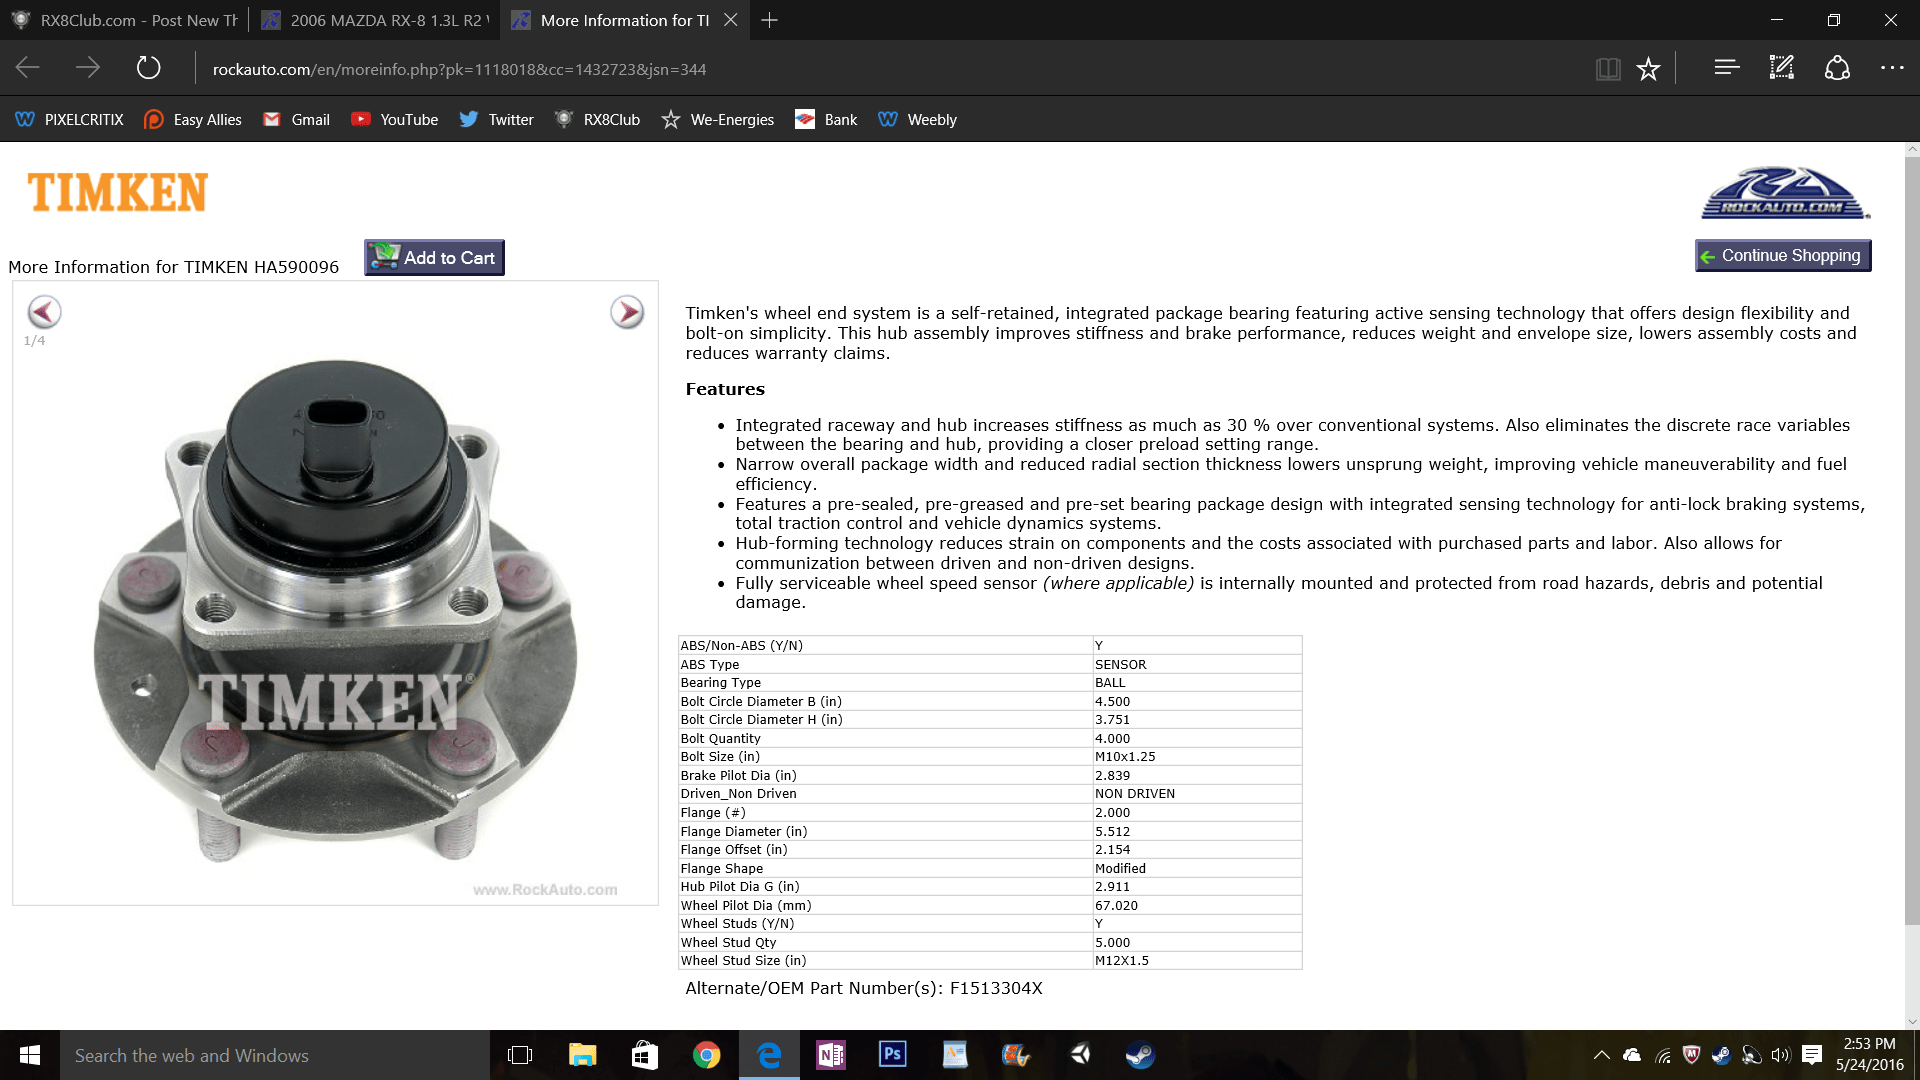 hight resolution of so i am checking rock auto and there are three options shown here